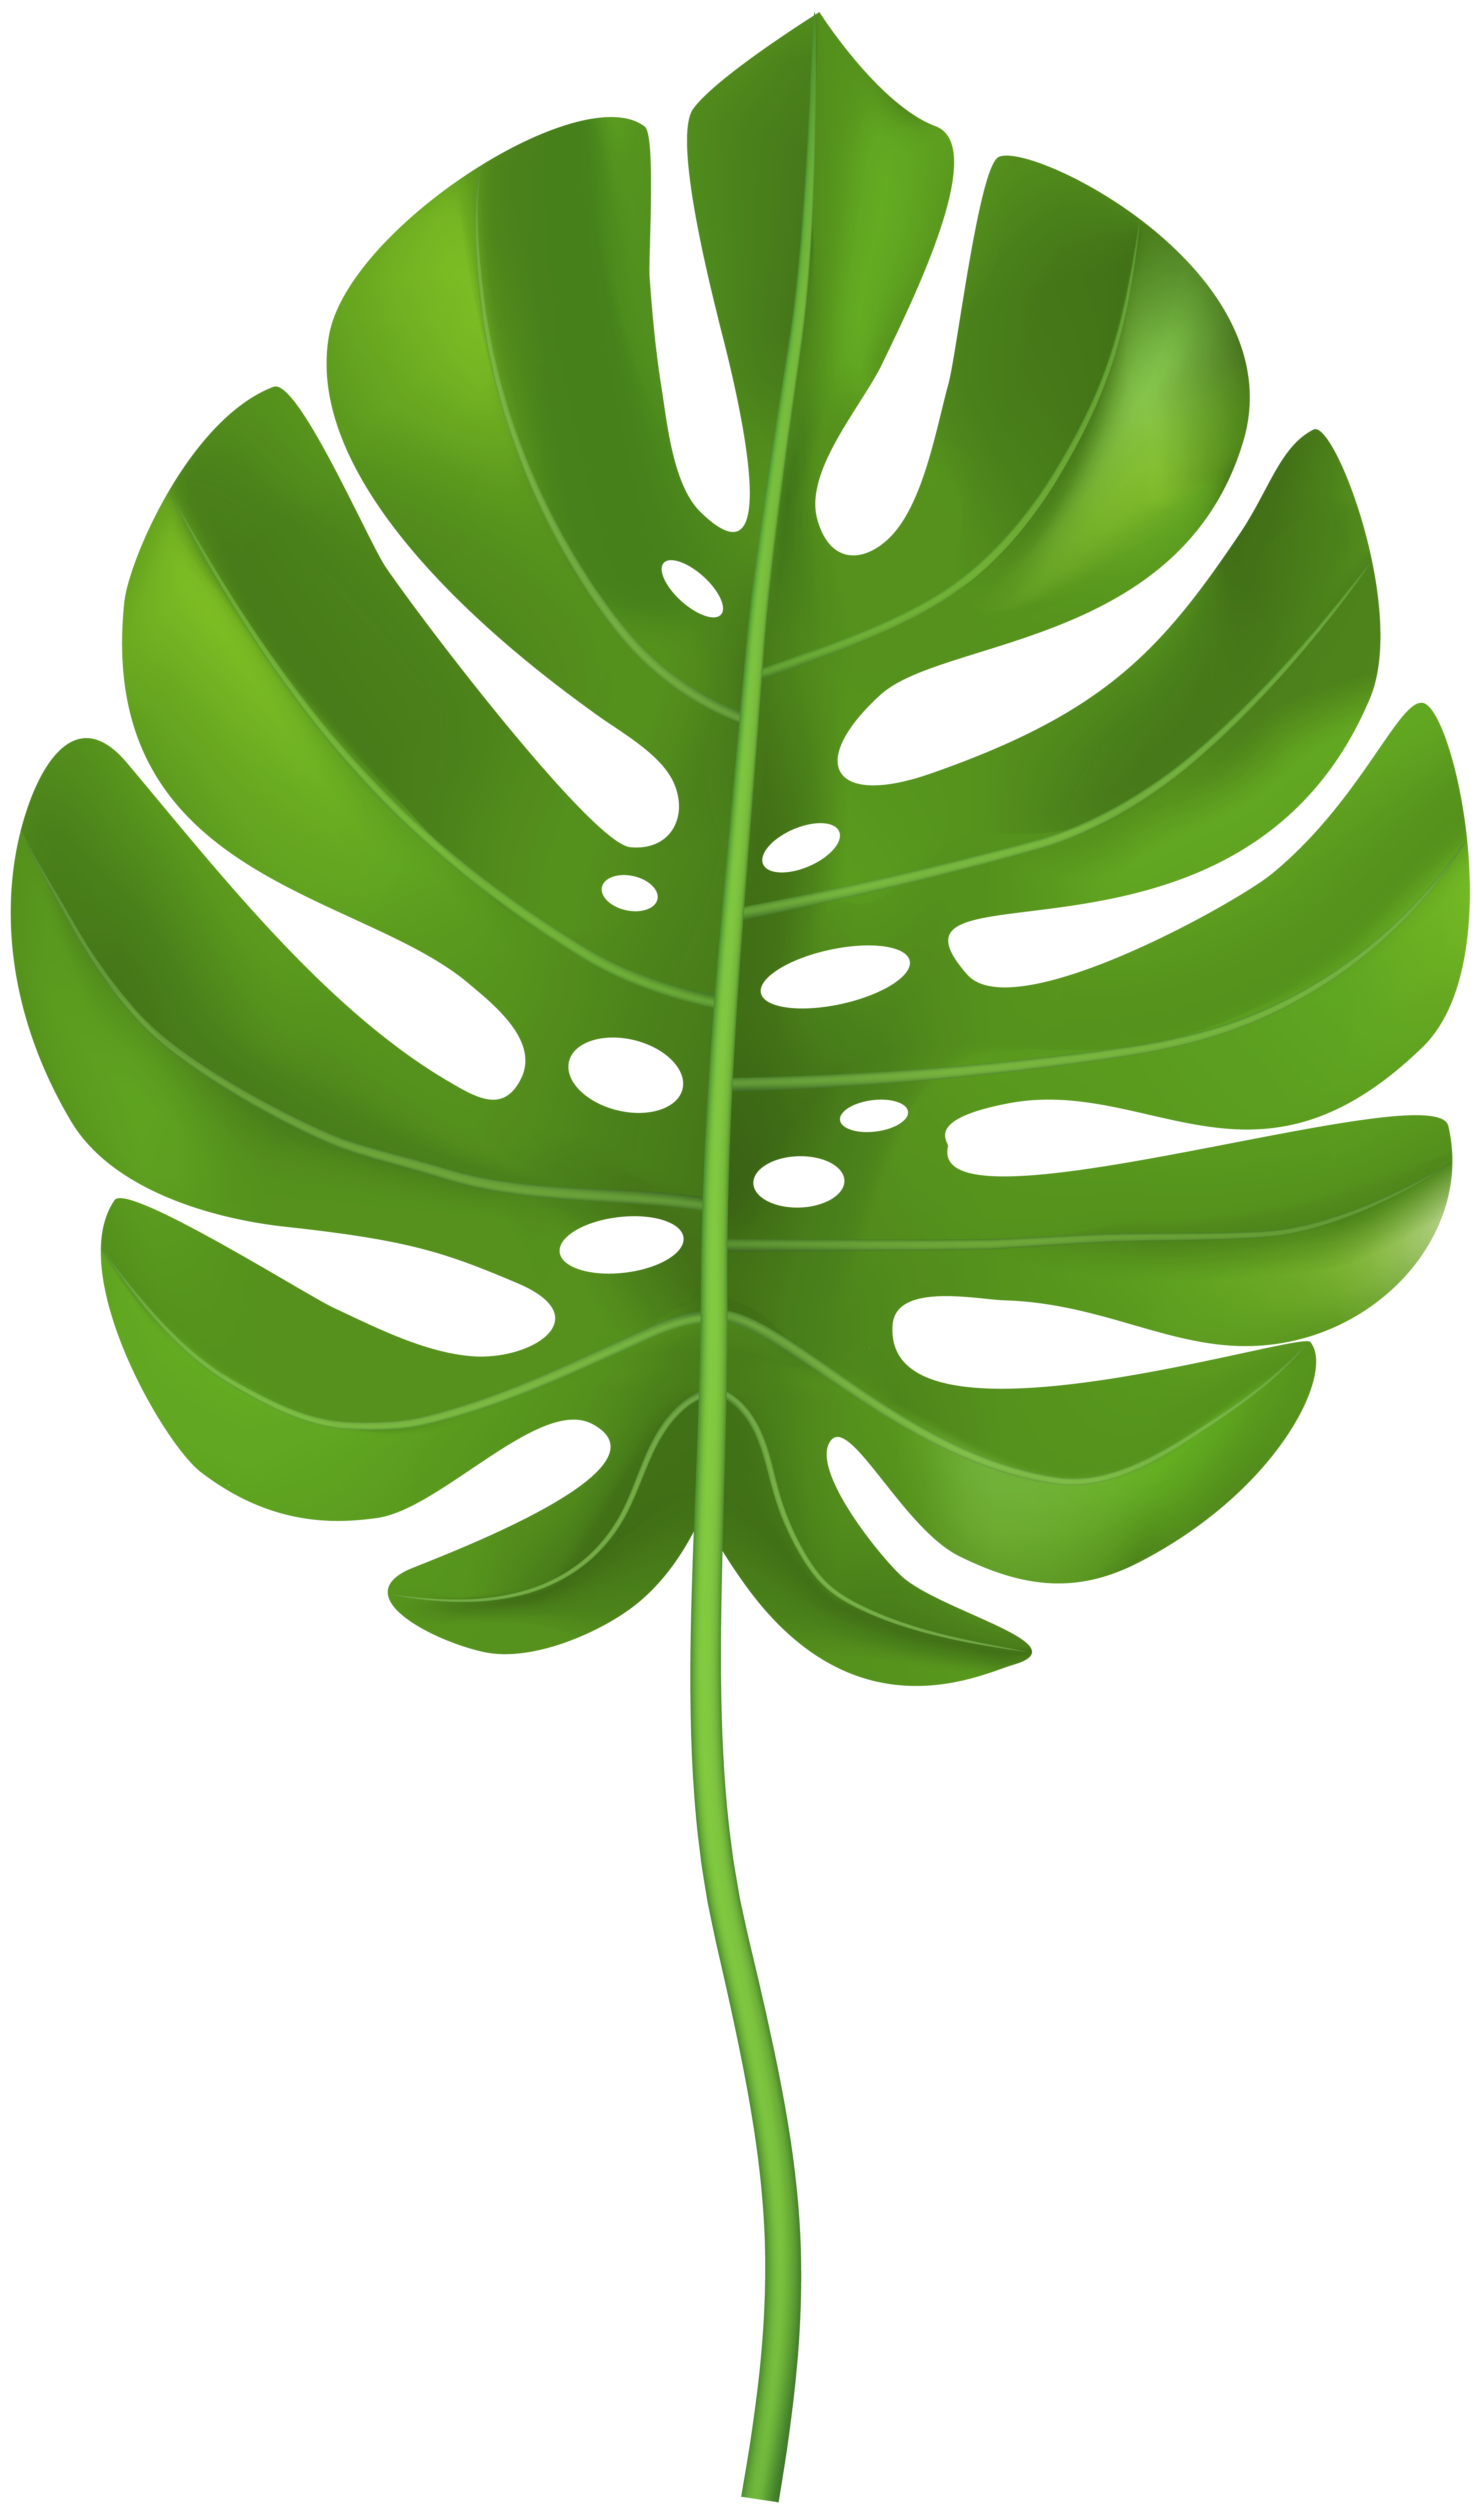 Tropical Leaves Png - Tropical Palm Leaf Transparent PNG Clip Art Image   Gallery ...